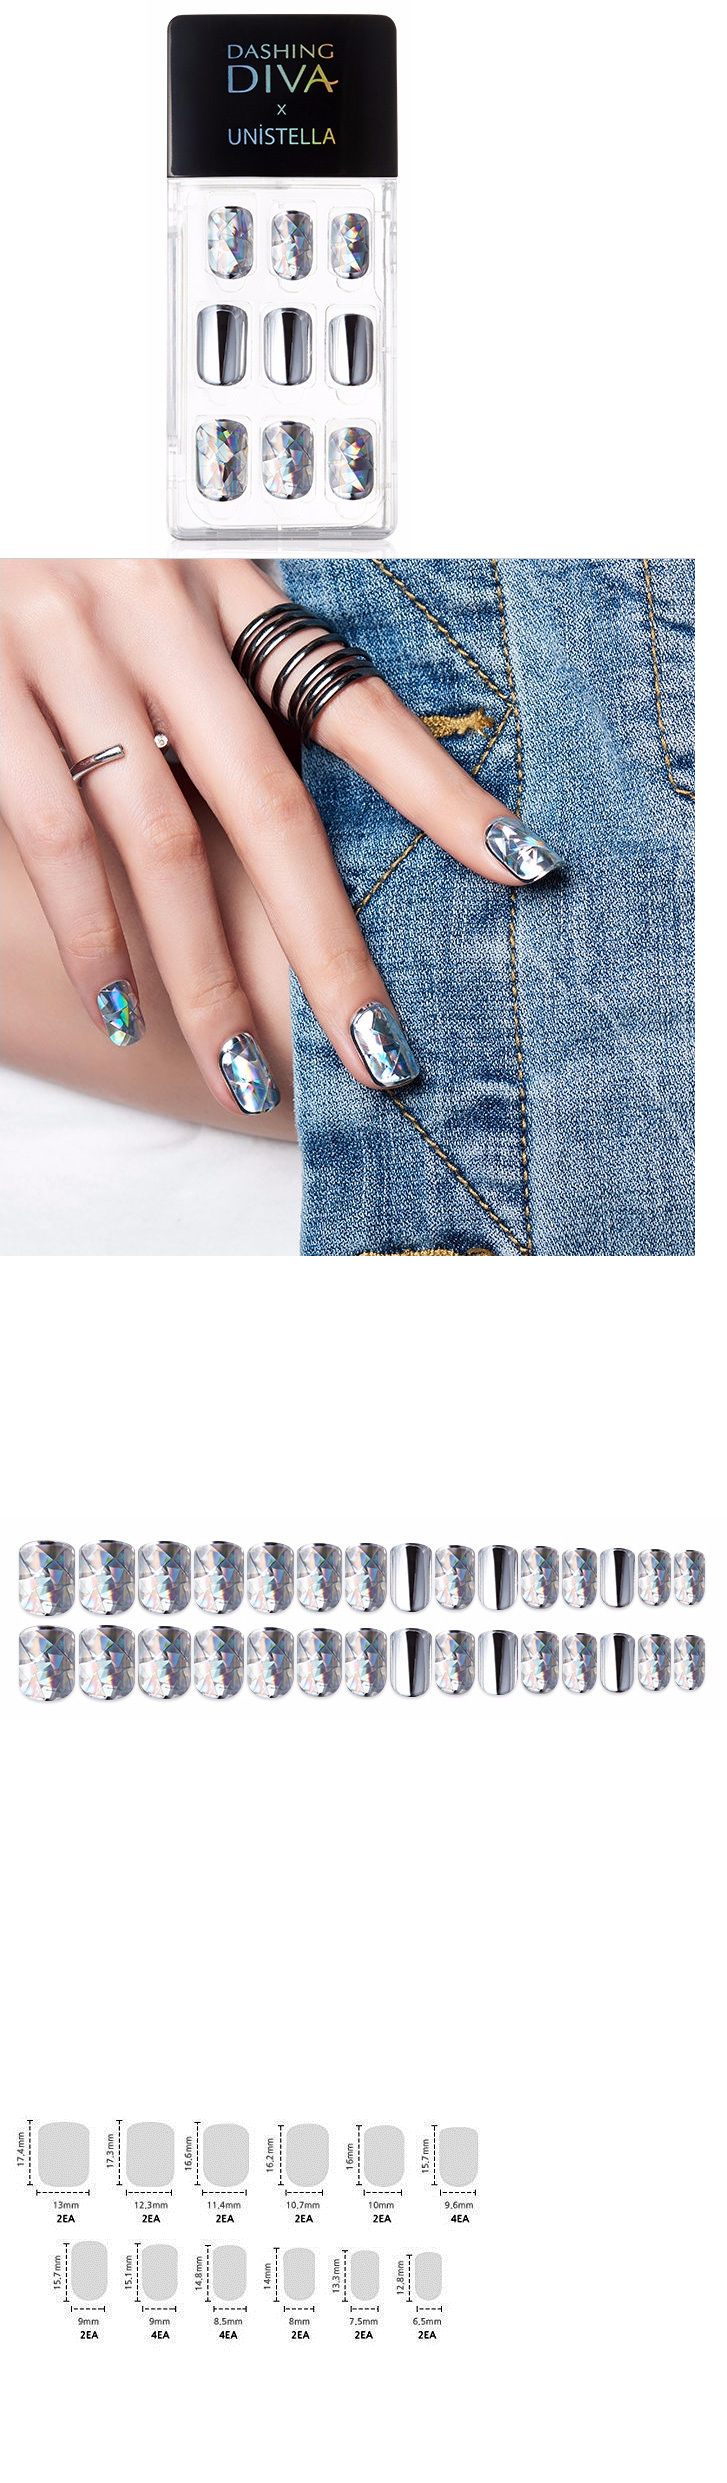 Press-On Nails: Dashing Diva Full Cover Gel Nail Tips, Easy To ...